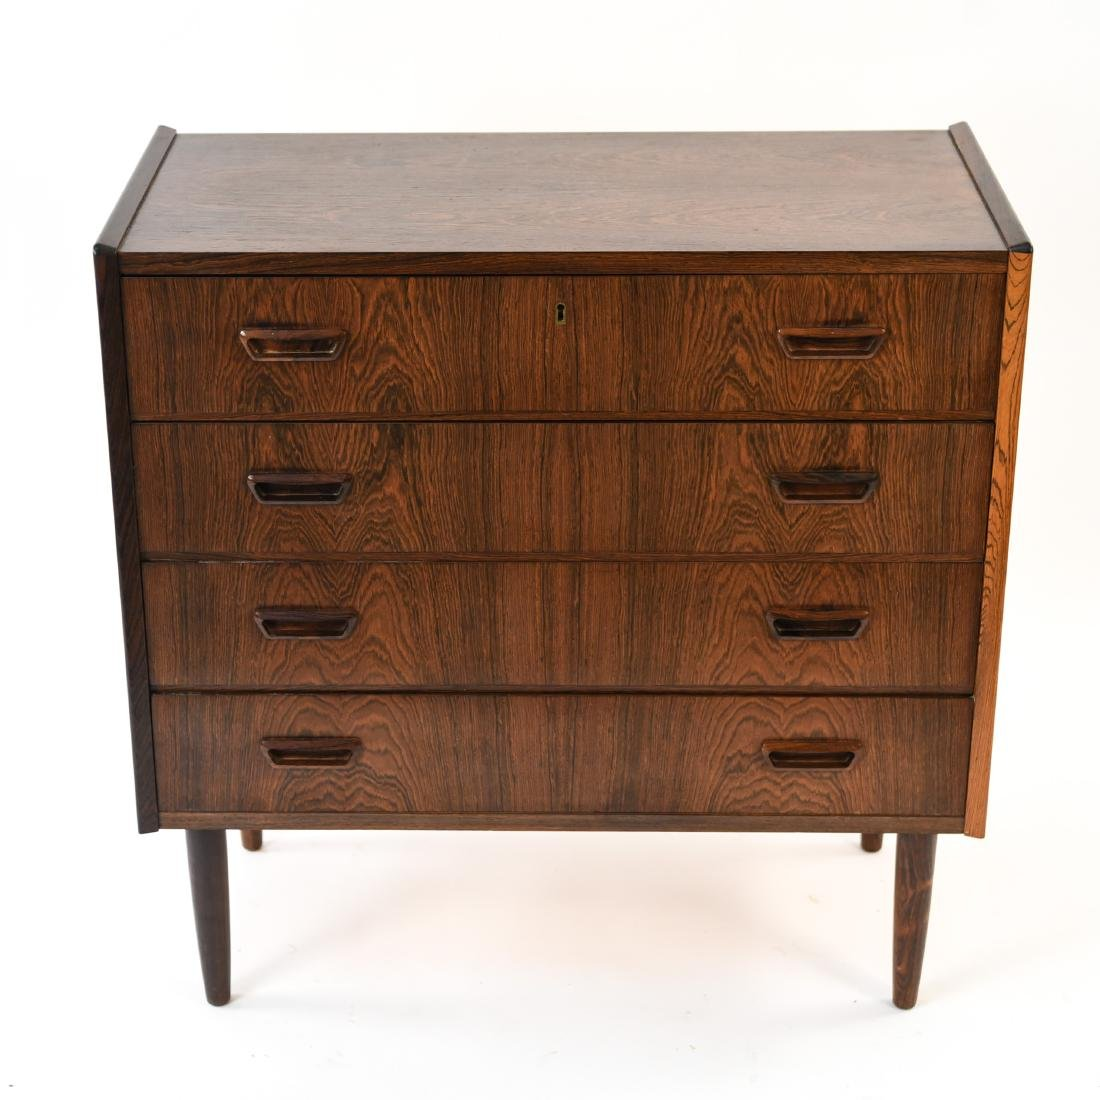 DANISH MID-CENTURY FOUR DRAWER ROSEWOOD CHEST - 2